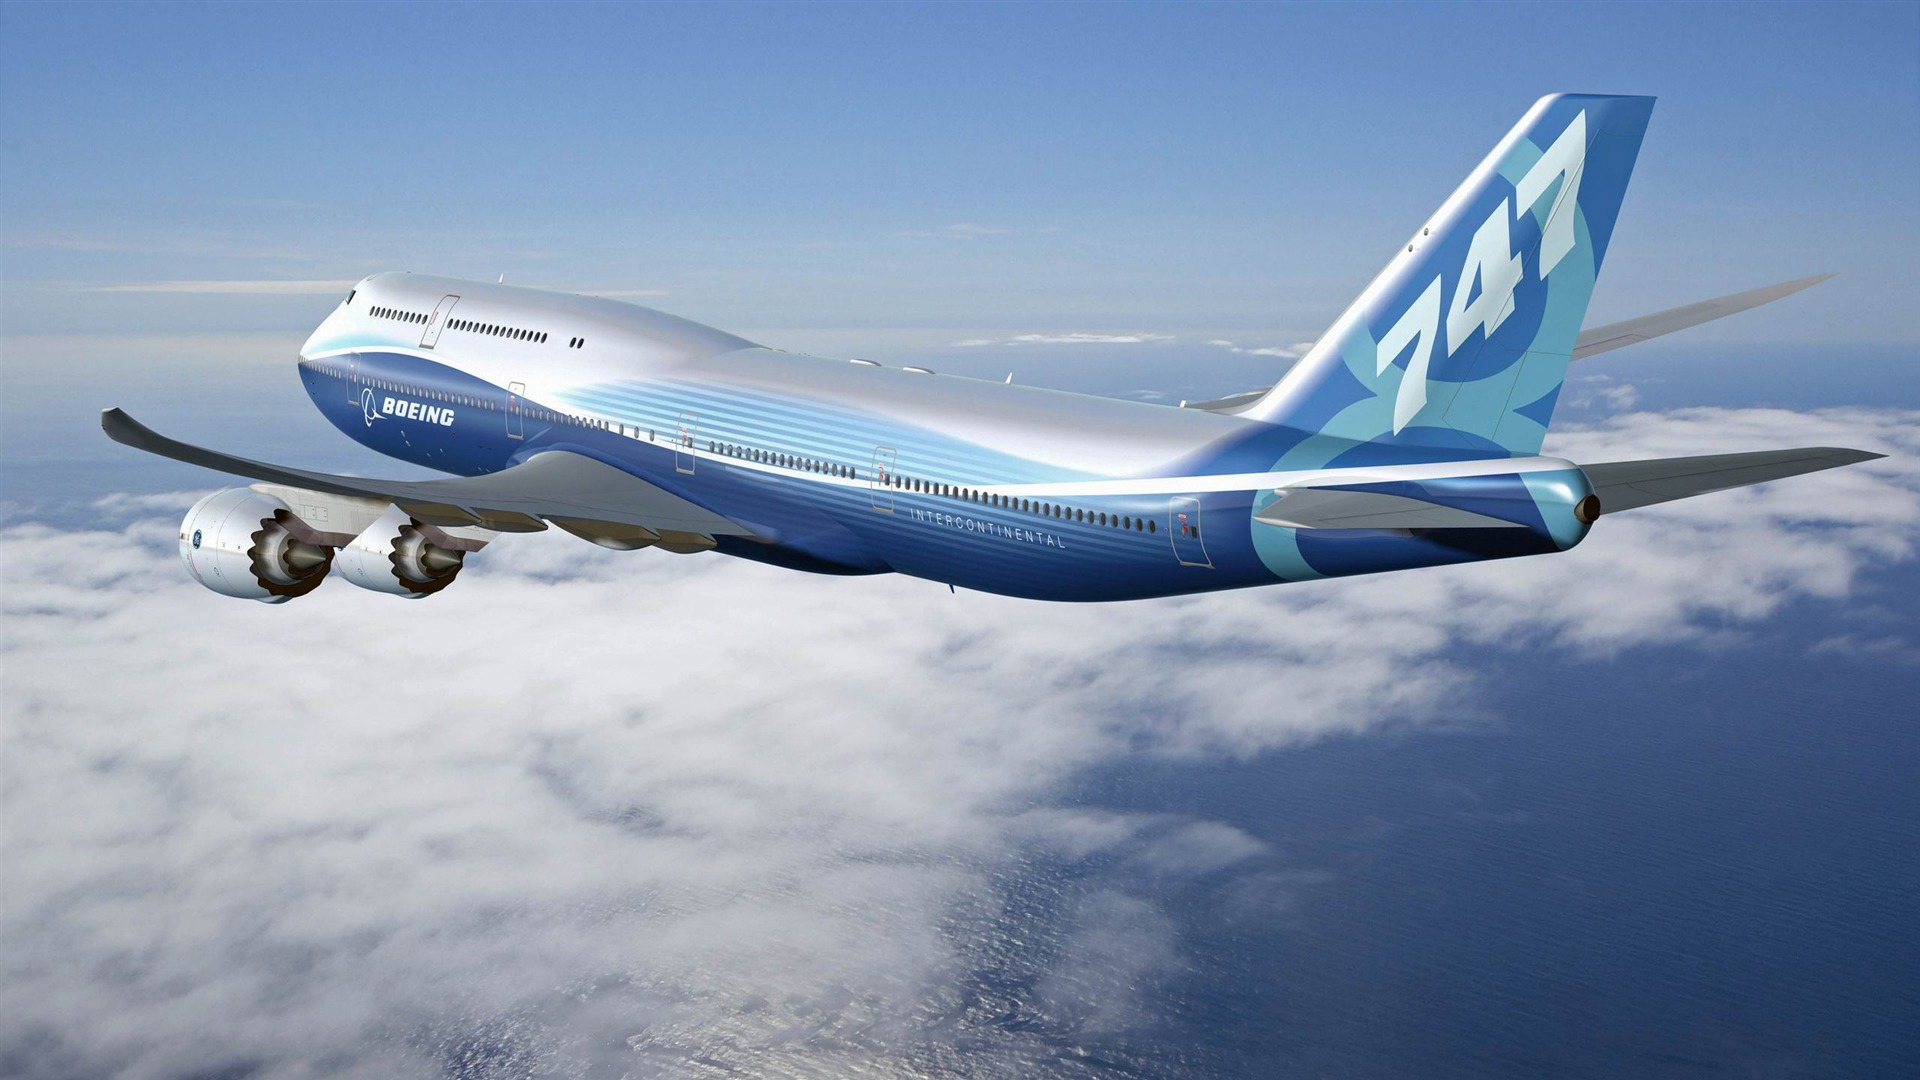 Commercial Air Travel Definitions